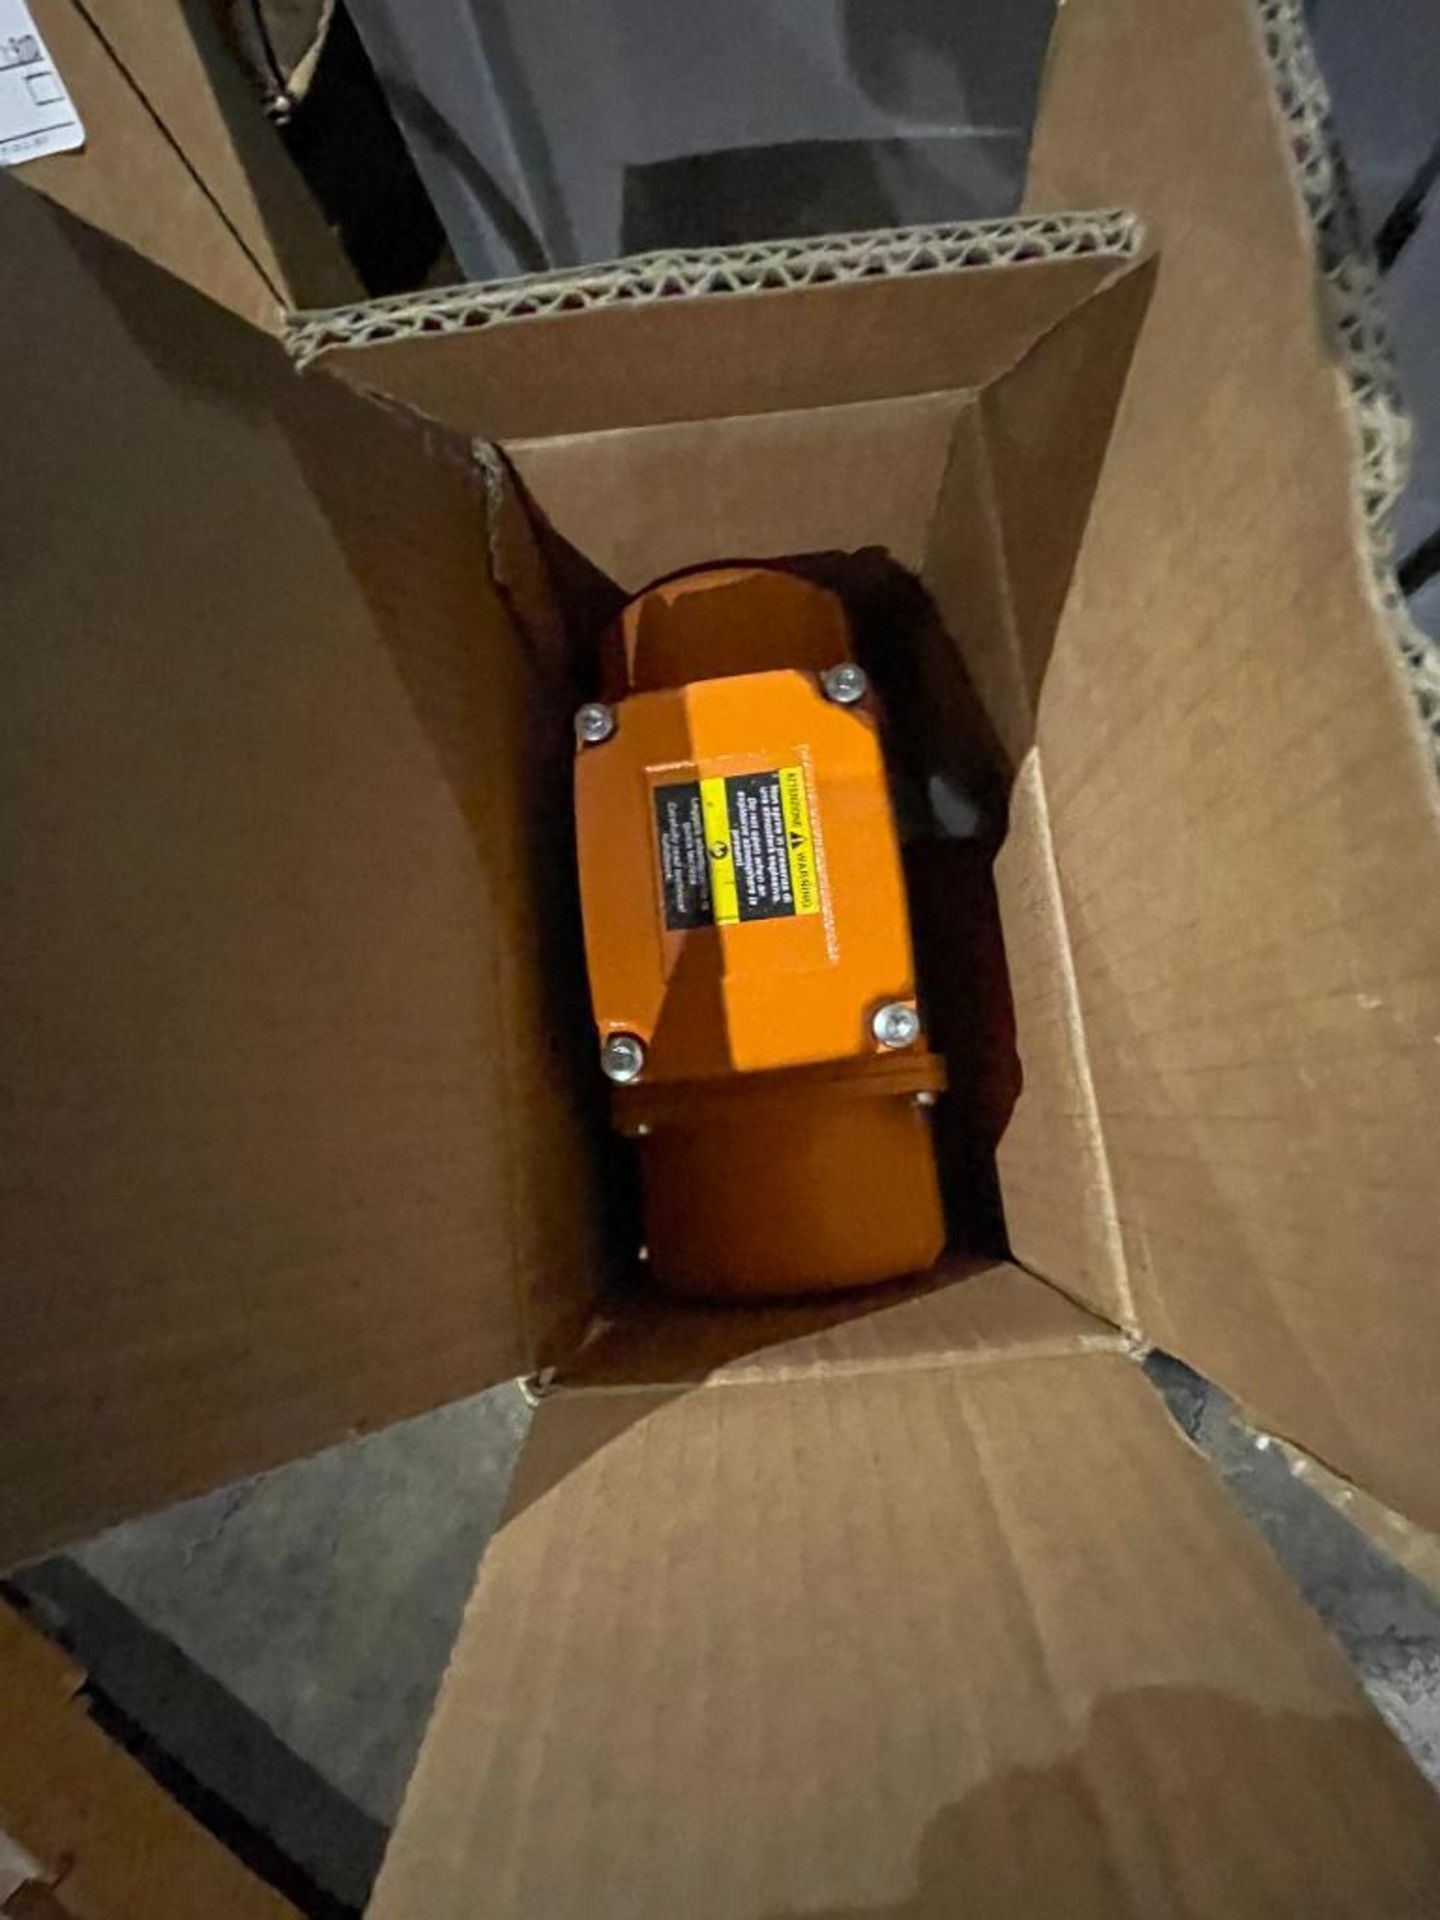 pallet of new and used motors and drives - Image 3 of 11